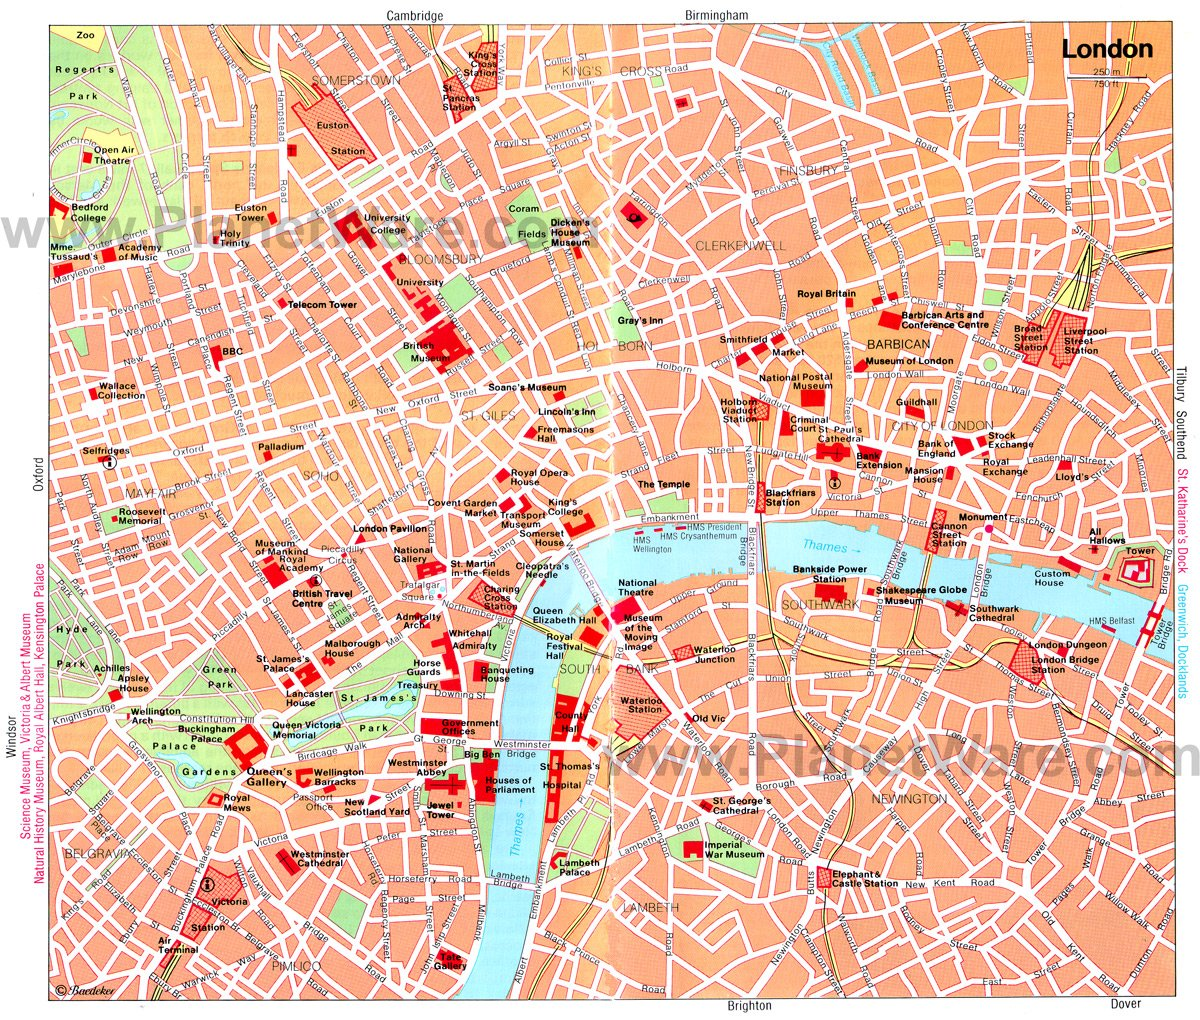 17 TopRated Tourist Attractions in London – Map Of London For Tourists